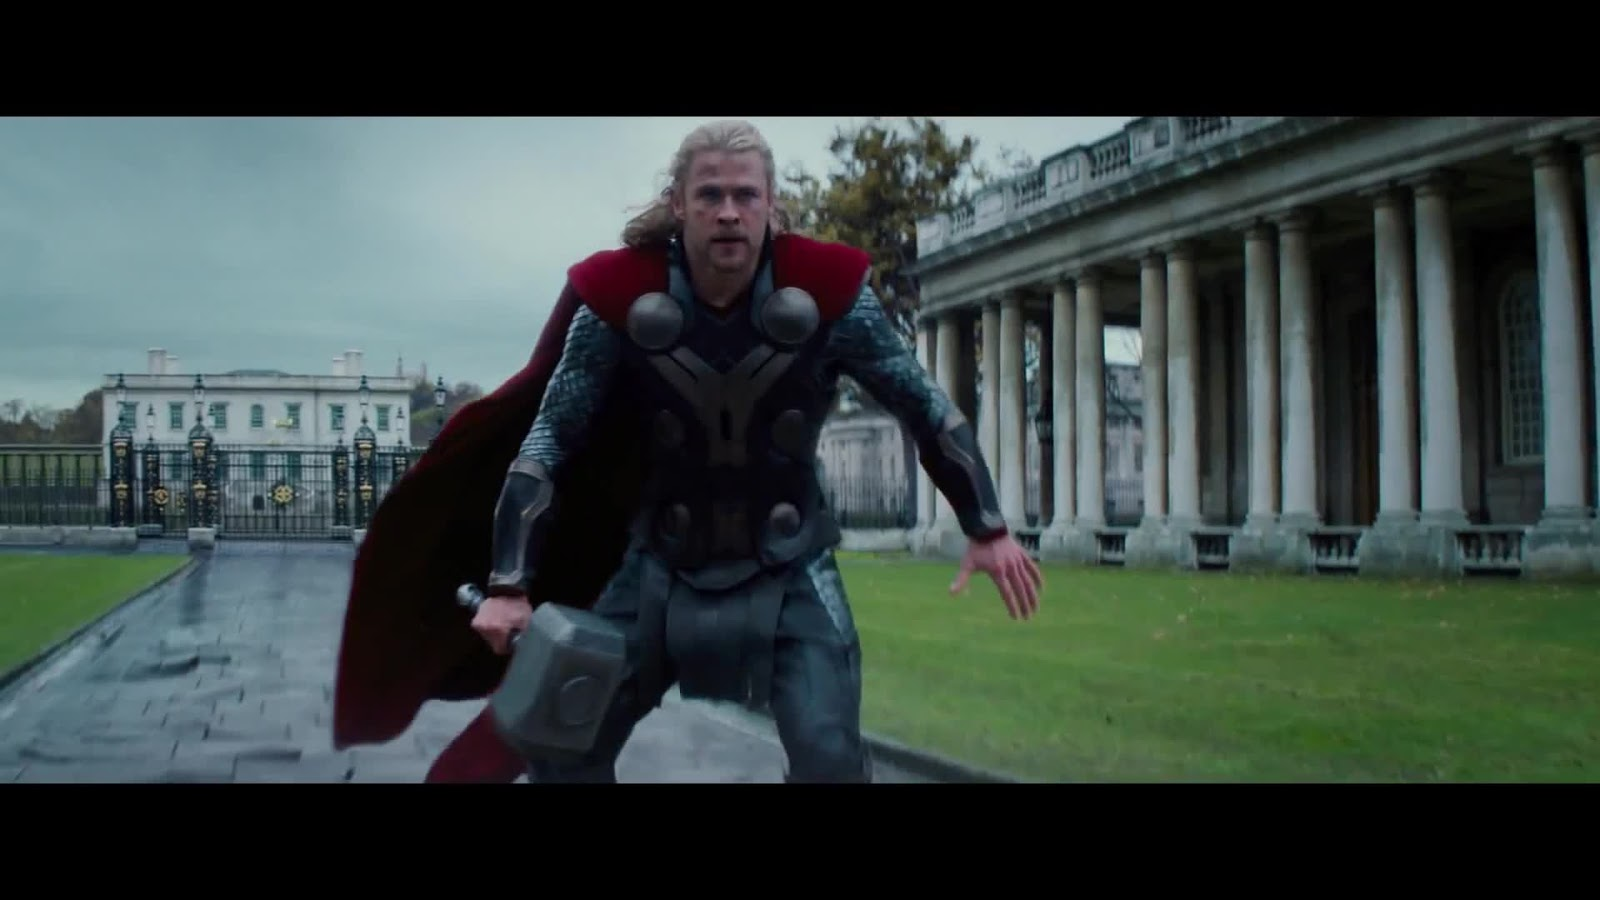 brand new thor: the dark world trailer, poster and hd screencaps